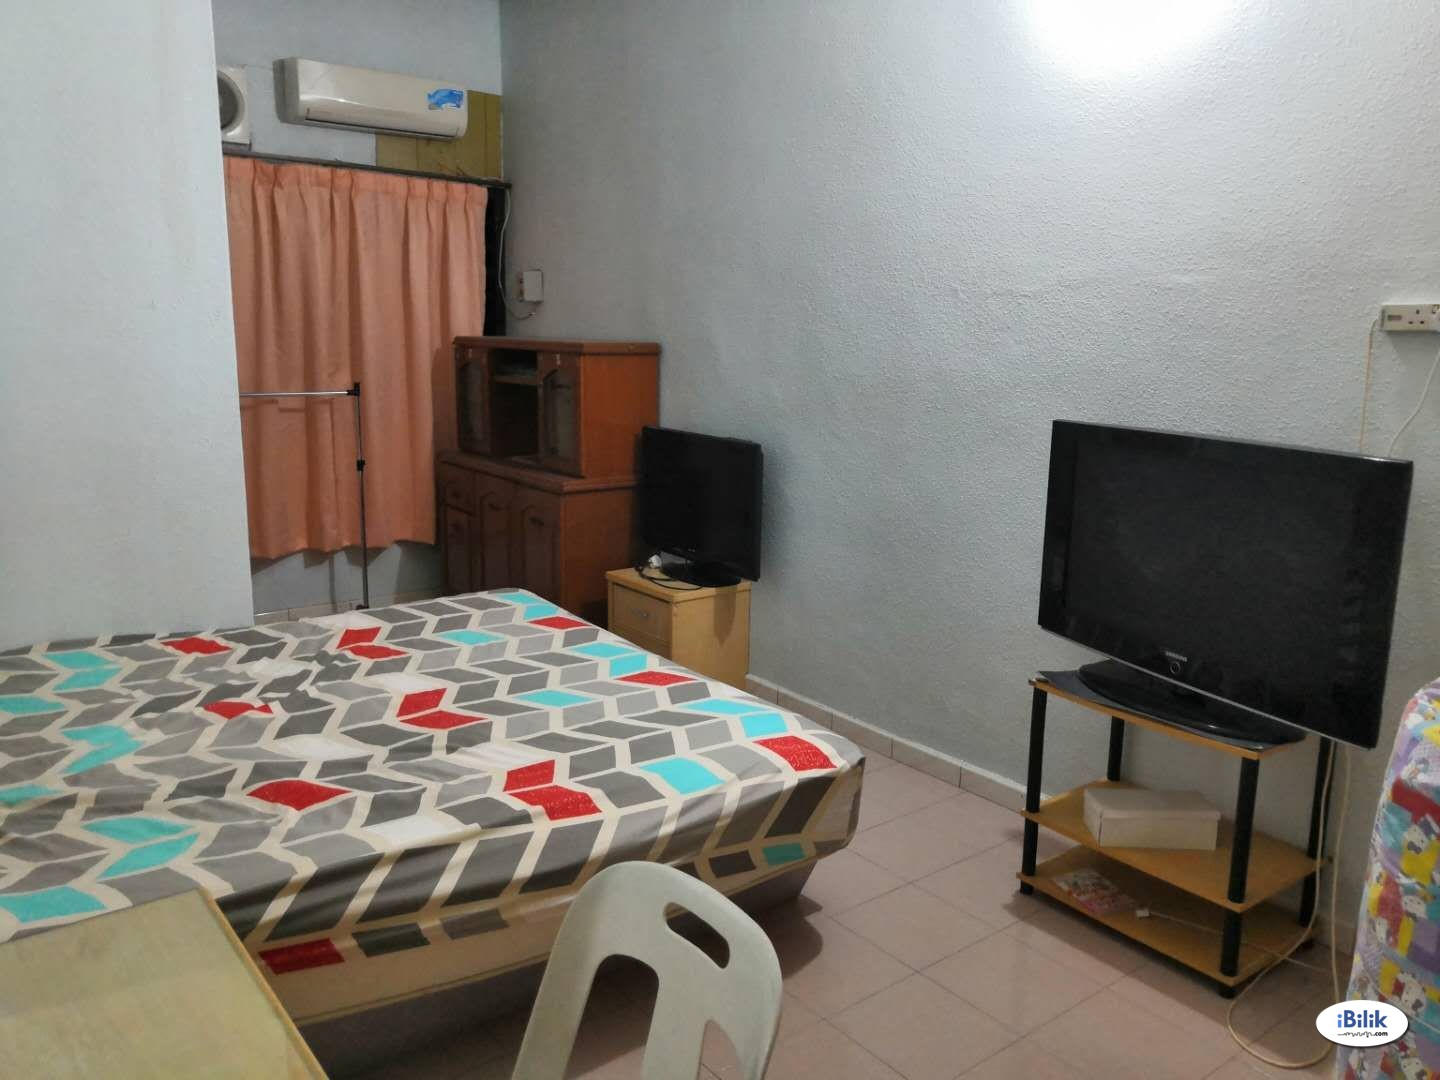 Middle Room at Taman Riang, Butterworth